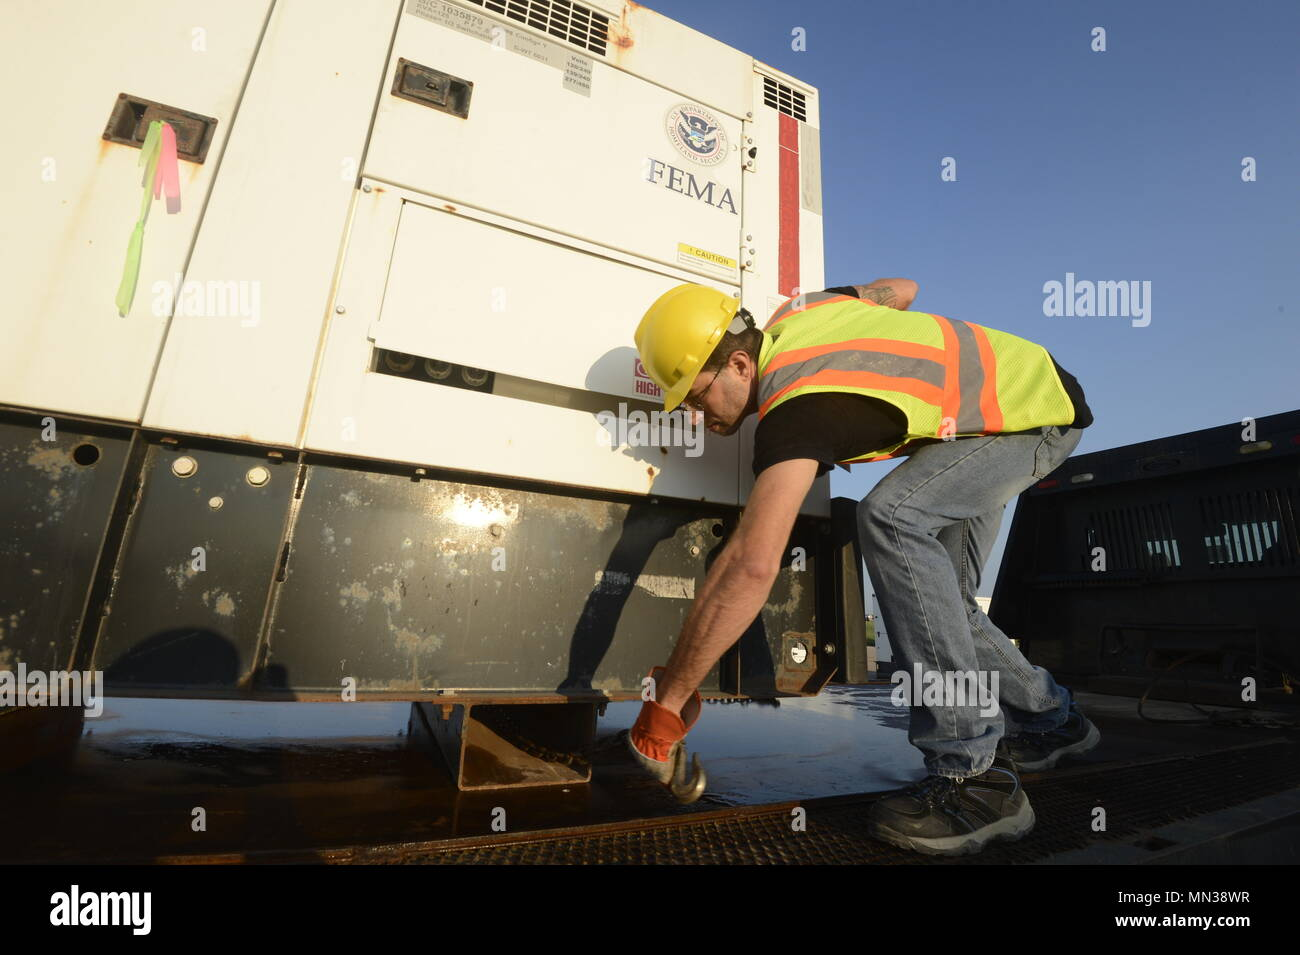 Jerry Wales, contractor, attaches support chains to a Federal Emergency Management Agency diesel generator to be used in support Hurricane Harvey relief efforts, at JBSA Randolph auxiliary airfield, Seguin, Texas, August 31, 2017. The category-4 hurricane, with wind speeds of 130 mph, made landfall August 25, 2017.  Days after the hurricane reached Texas, more than 50 inches of rain flooded the coastal region. (U.S. Air Force Photo by Tech. Sgt. Chad Chisholm/Released) Stock Photo